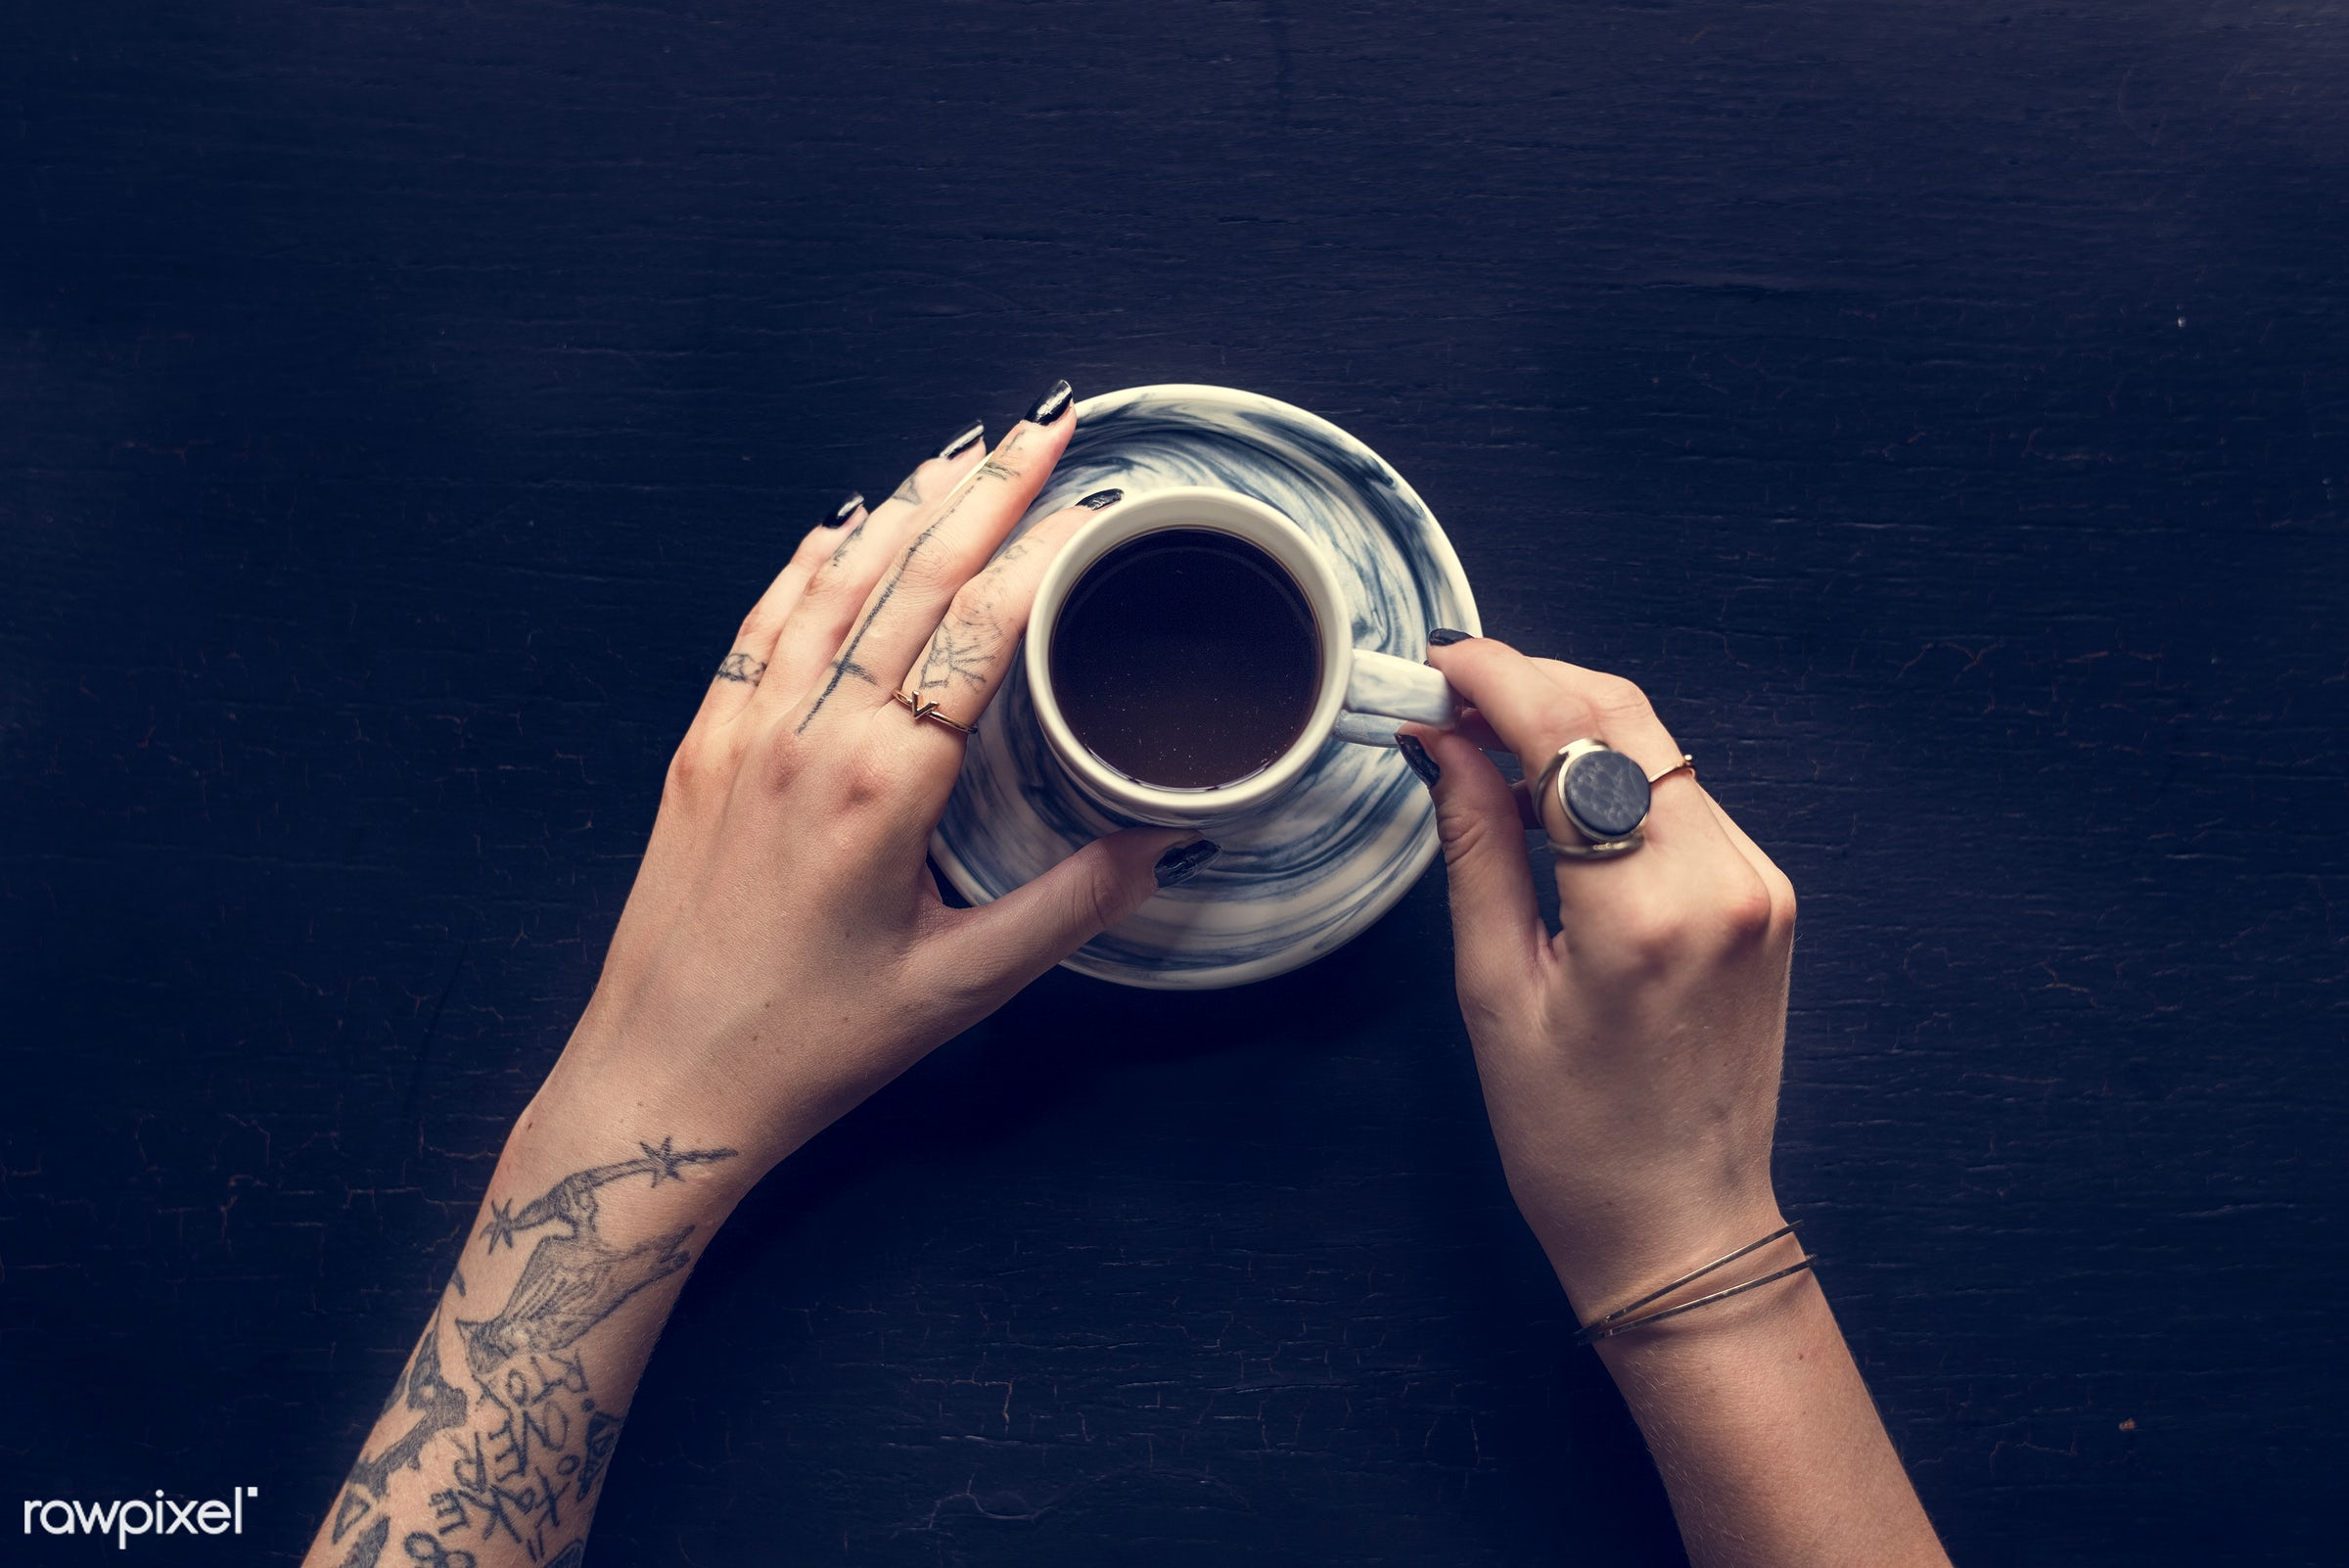 cup, person, caffeine, relax, show, people, hand, break, life, hands, lifestyle, drink, tattoo, refresh, passion, live,...